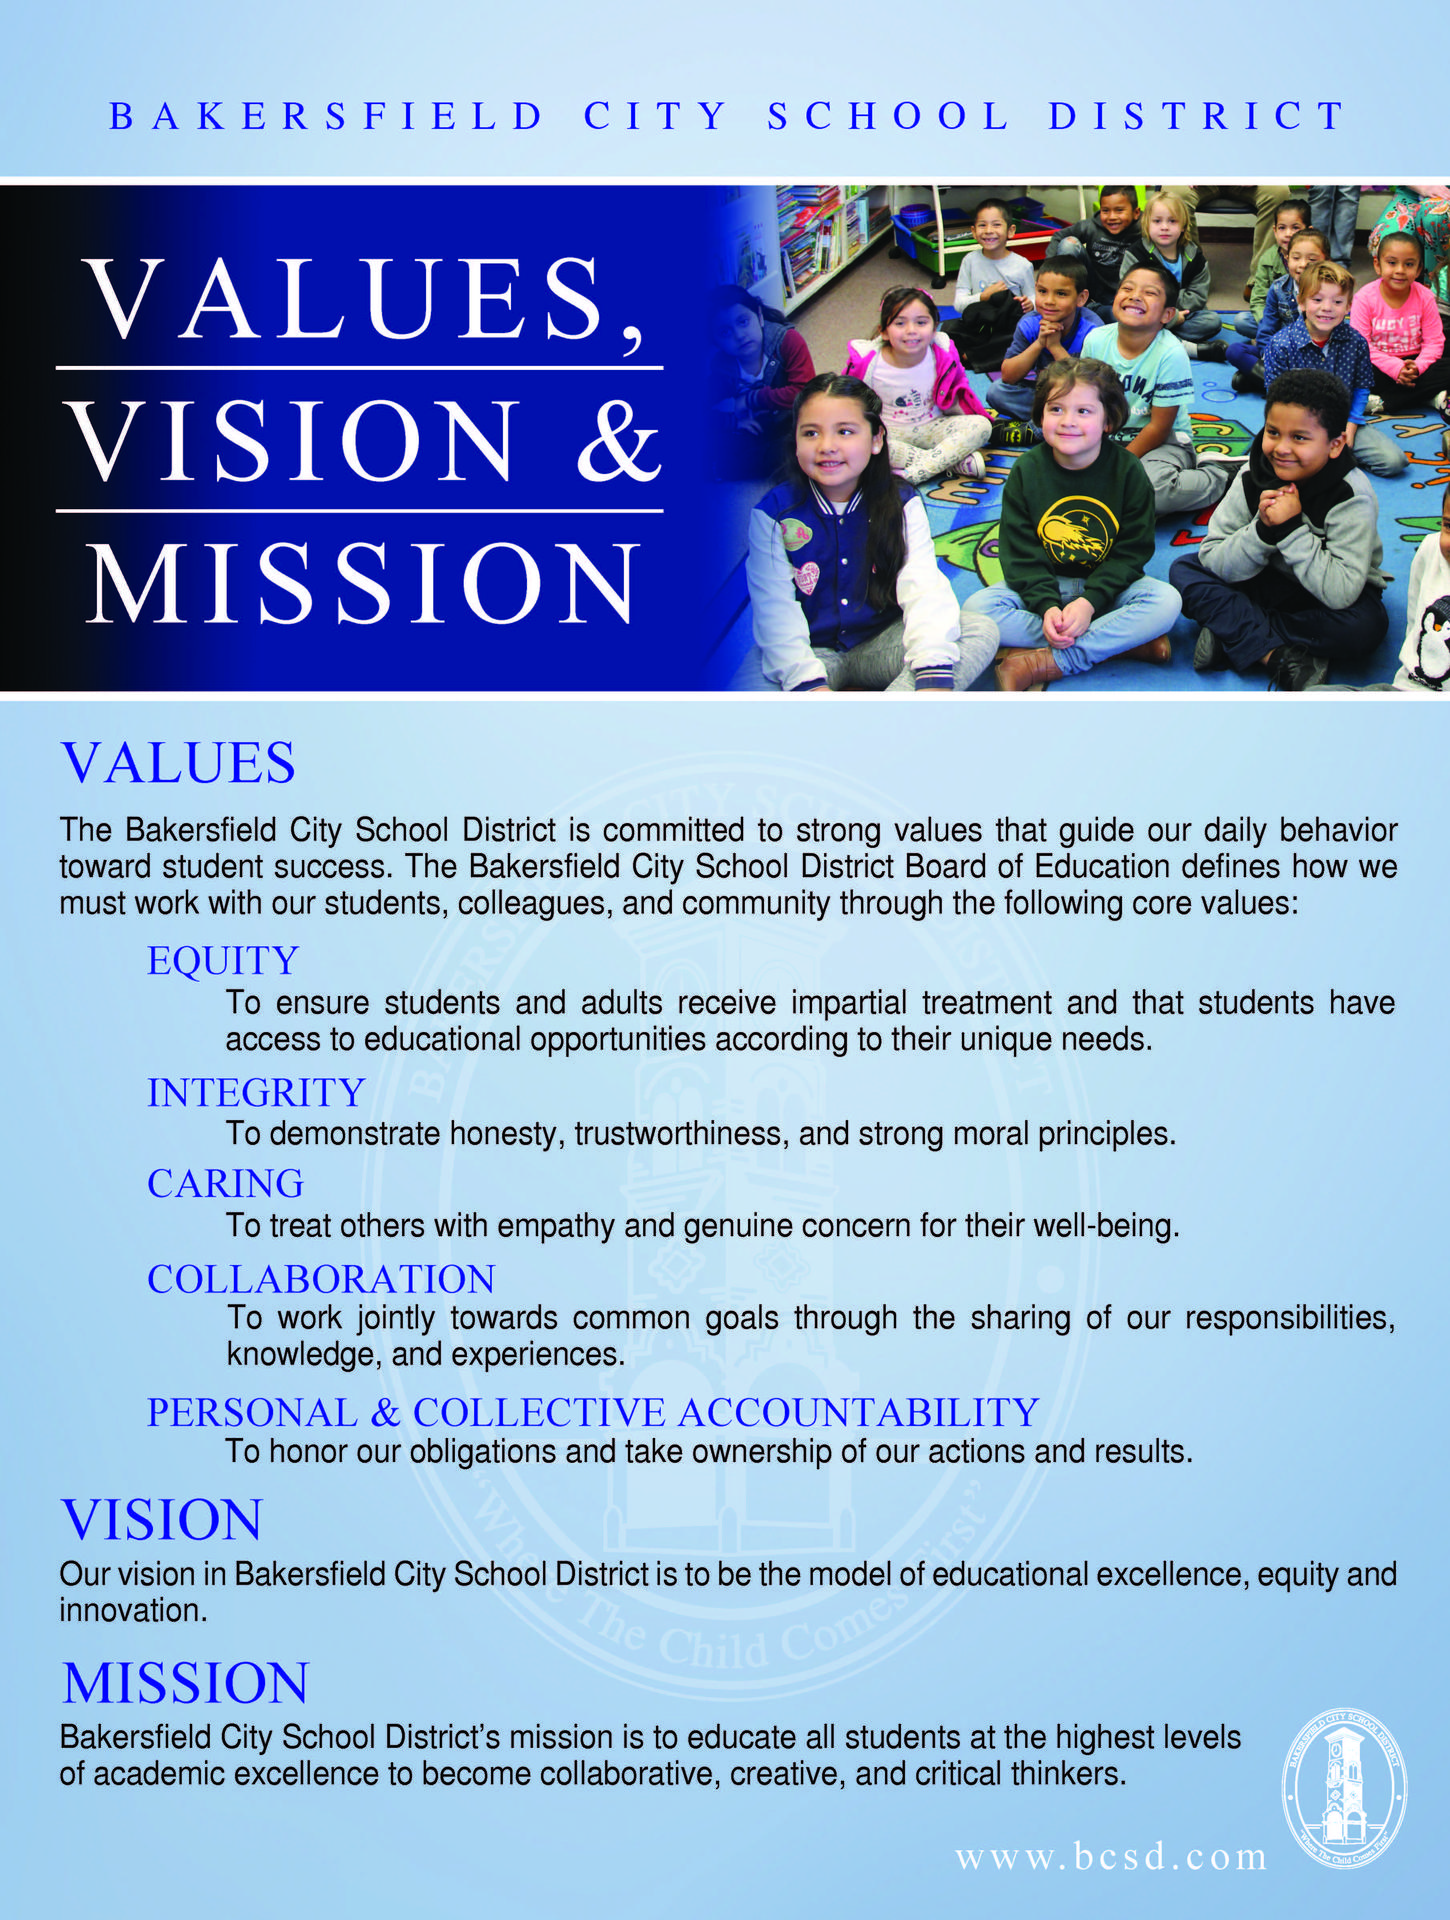 Values Vision and Mission